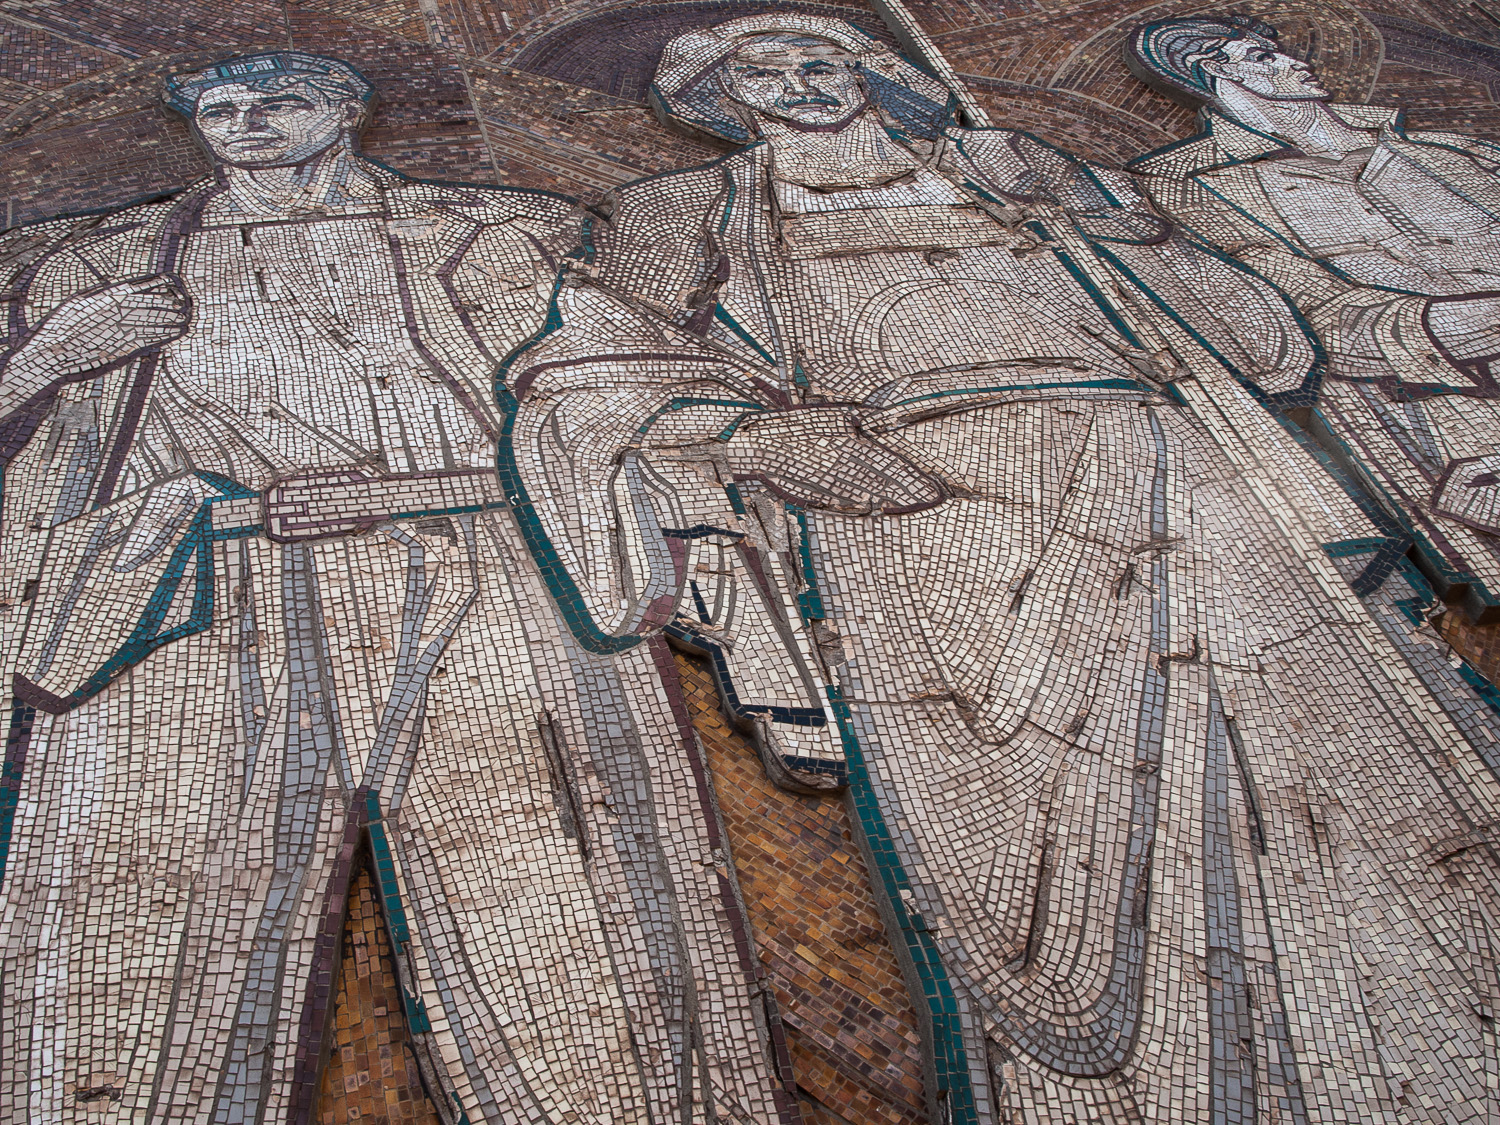 A Soviet-era mosaic outside the Kryvorizhstal plant in the city of Kryvyi Rih. The city is a major centre of steel production and iron ore mining.